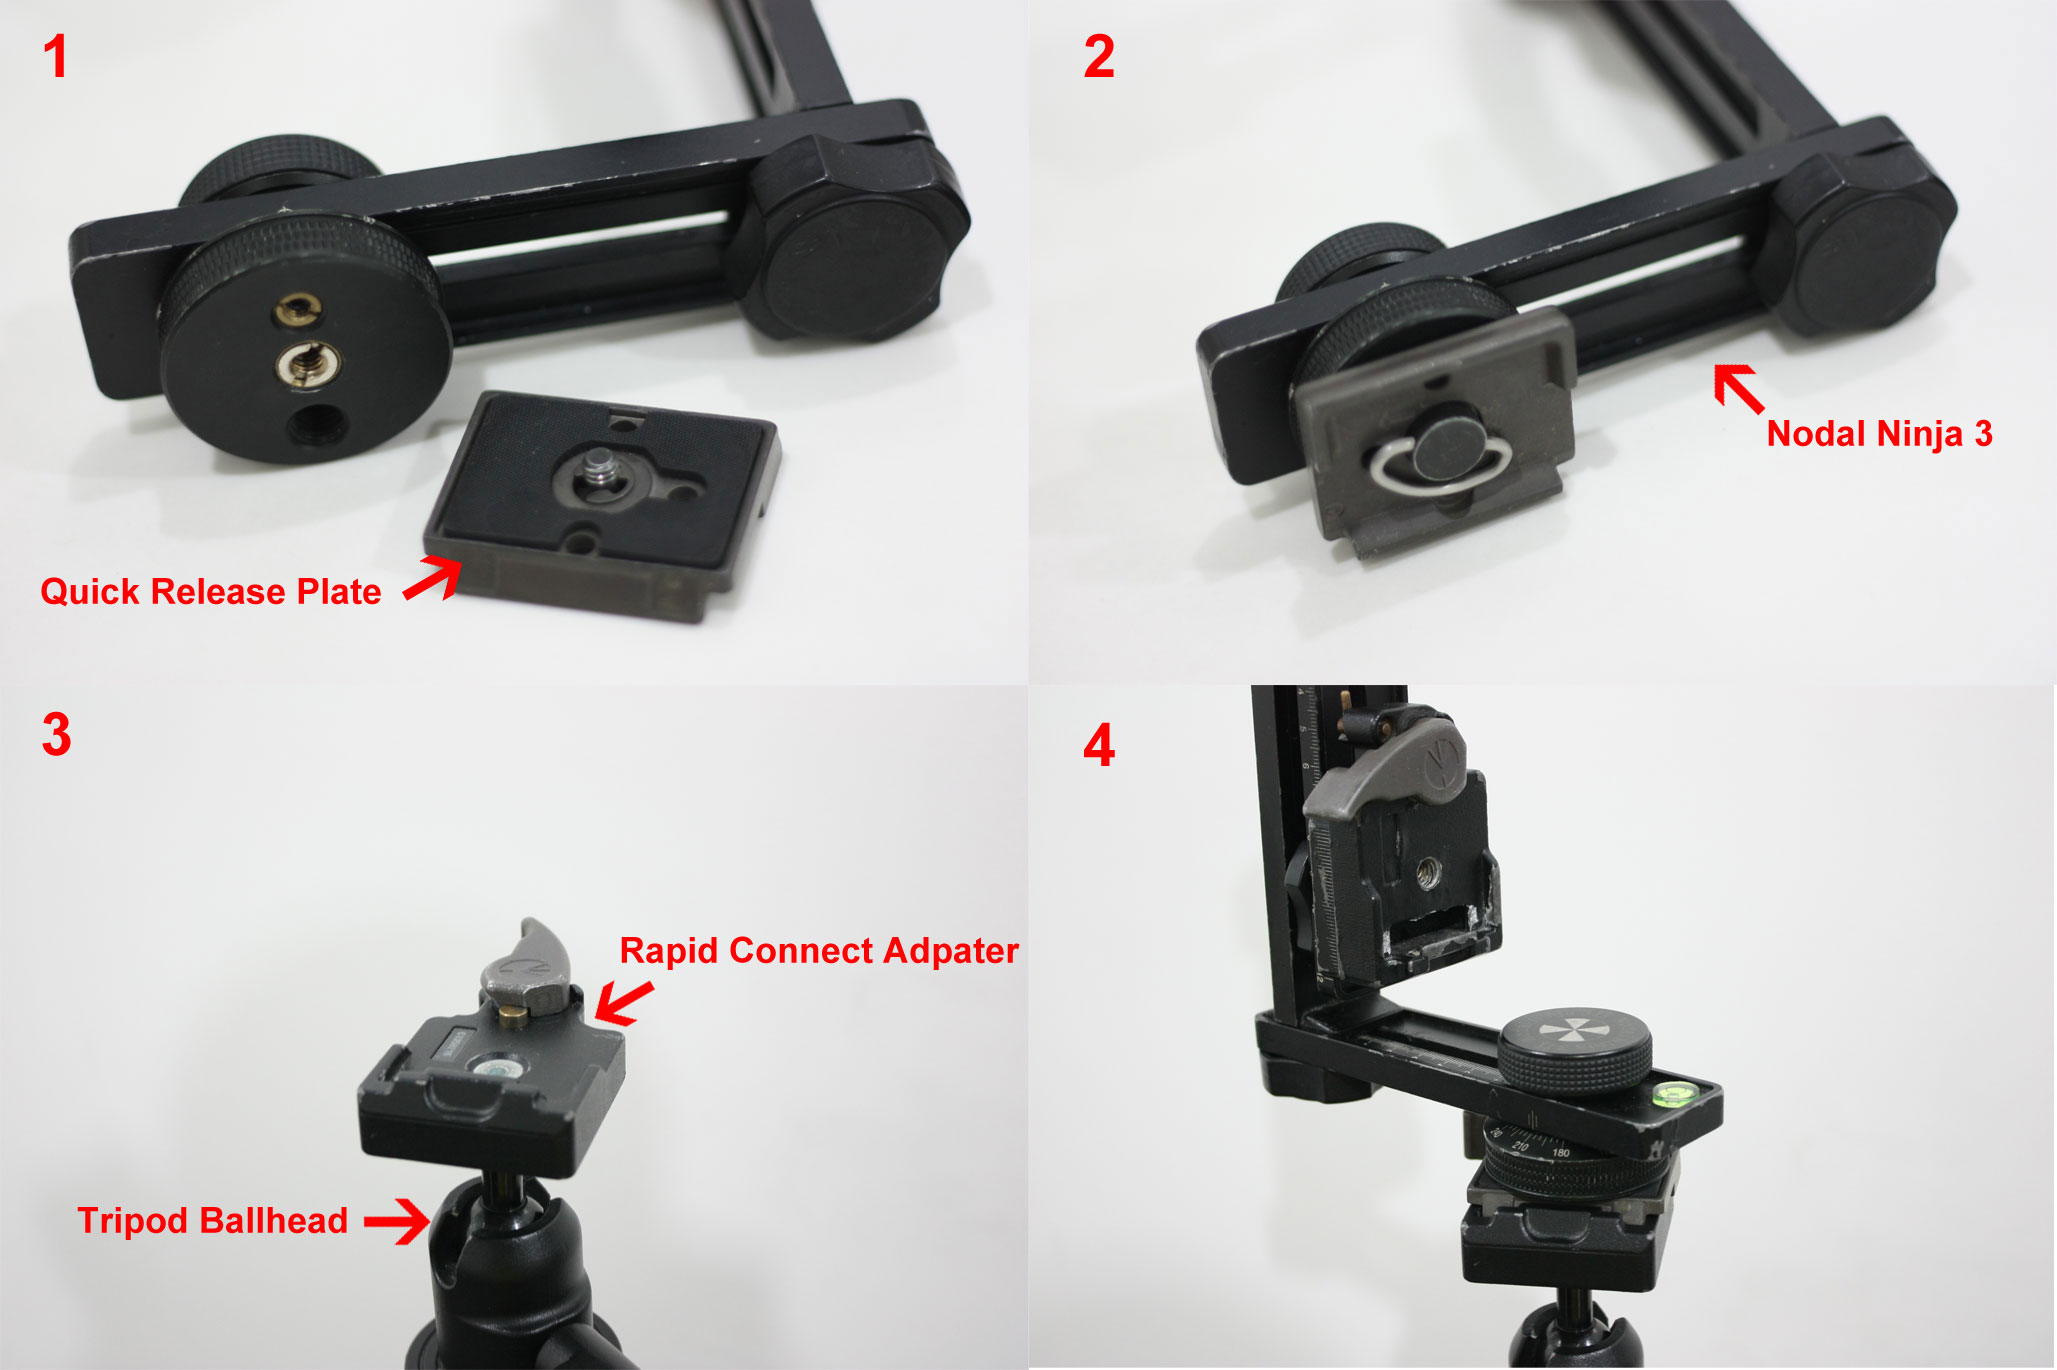 Manfrotto Rapid Connect Adapter and Nodal Ninja 3